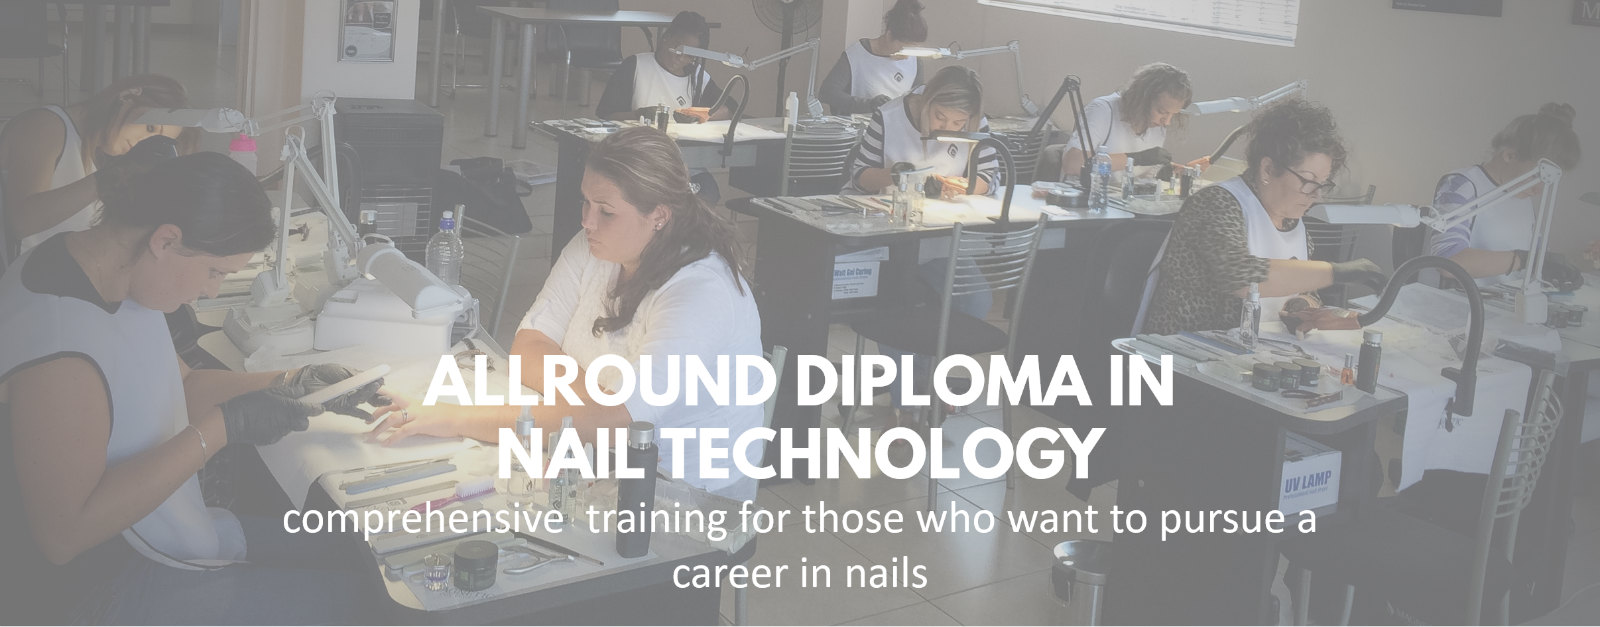 Allround Diploma in Nail Technology from Magnetic